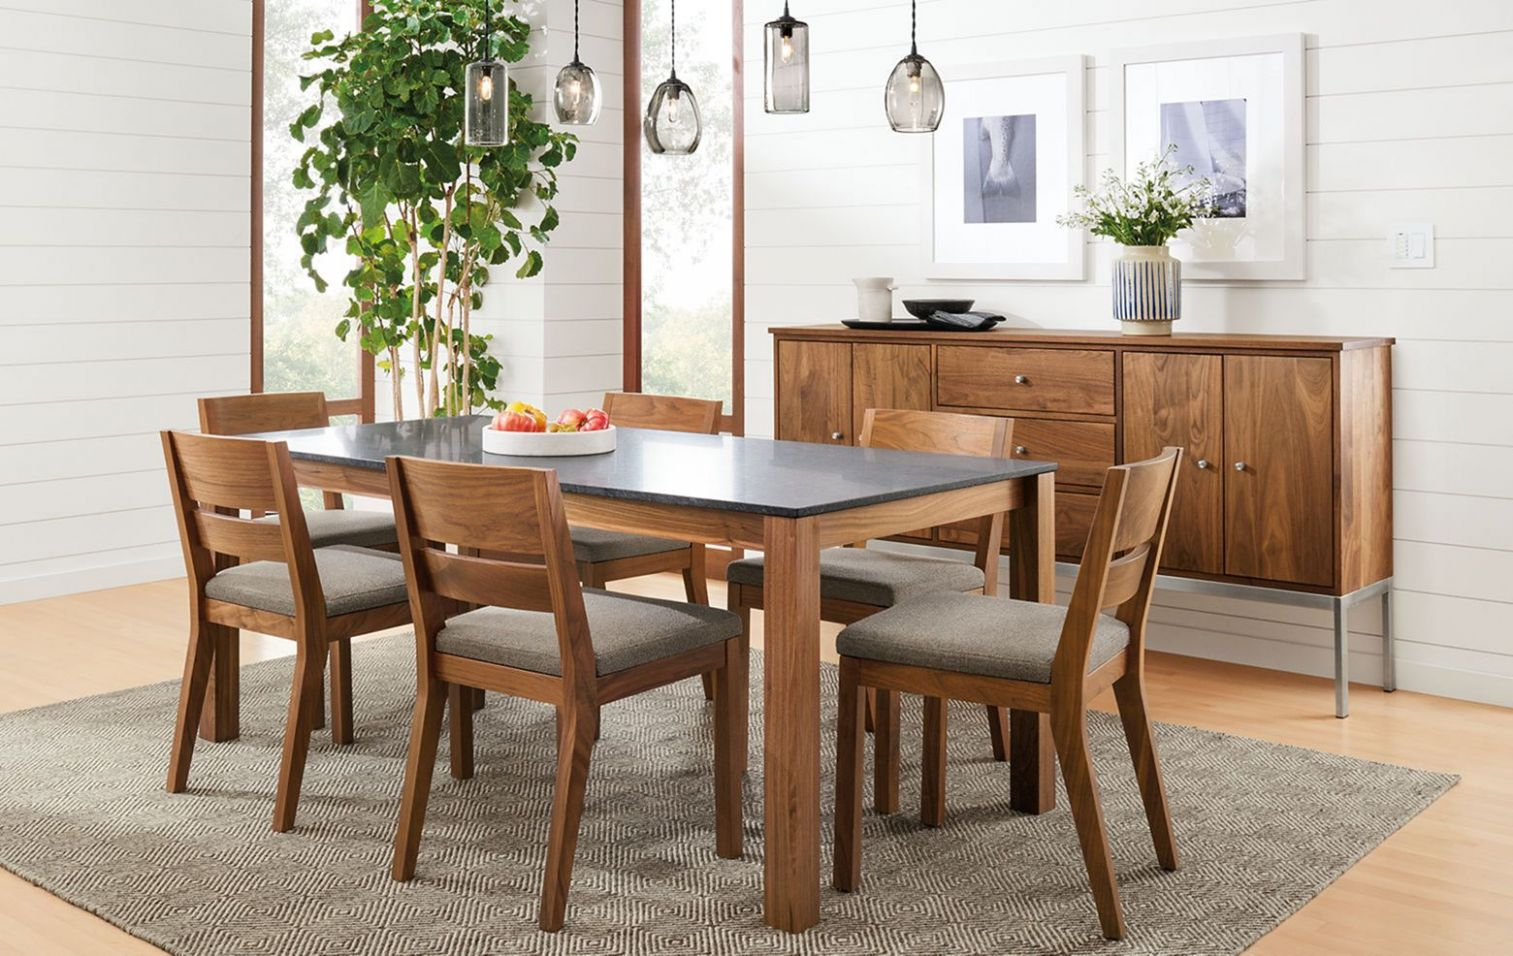 12 Adorable Small Dining Room Ideas For Dinner More Enjoy - DEXORATE